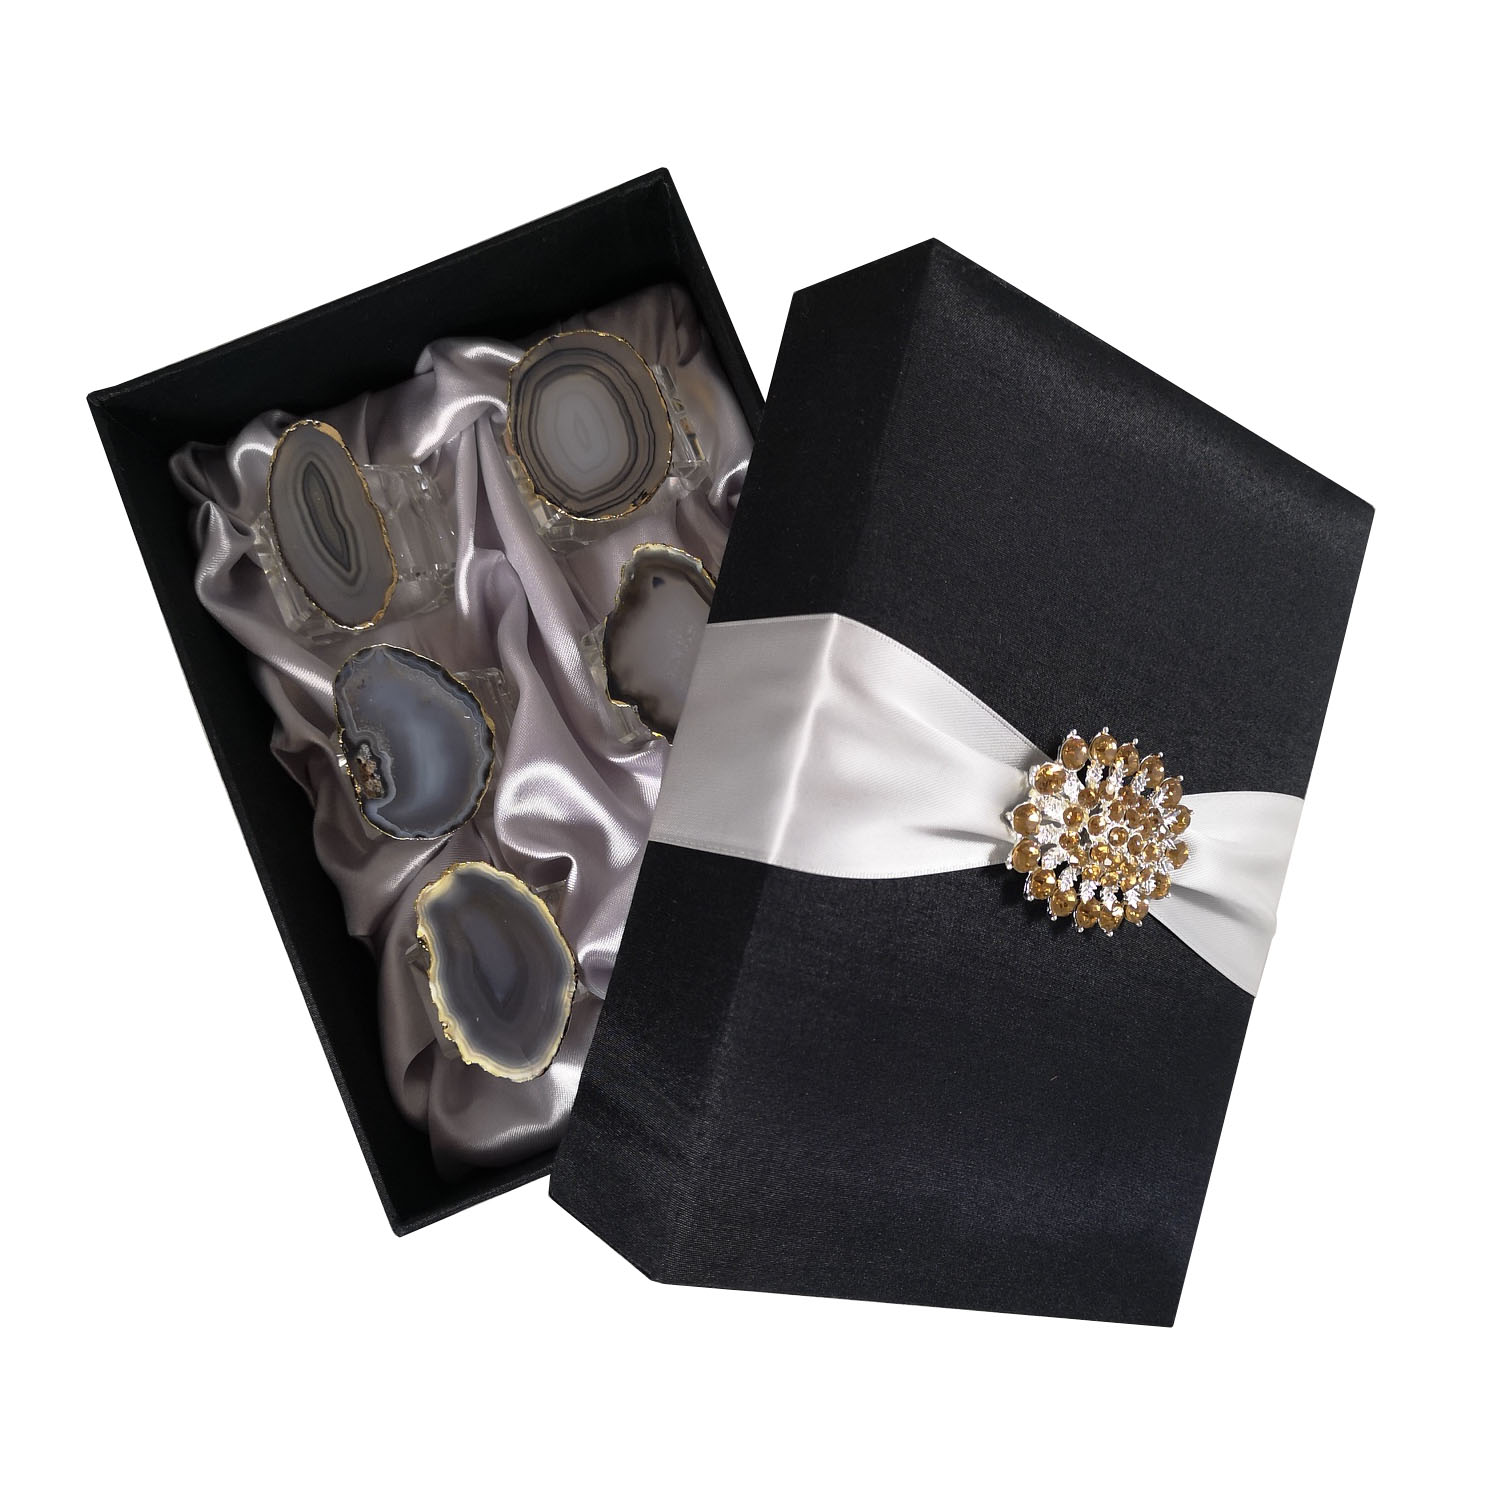 Napkin ring packaging box